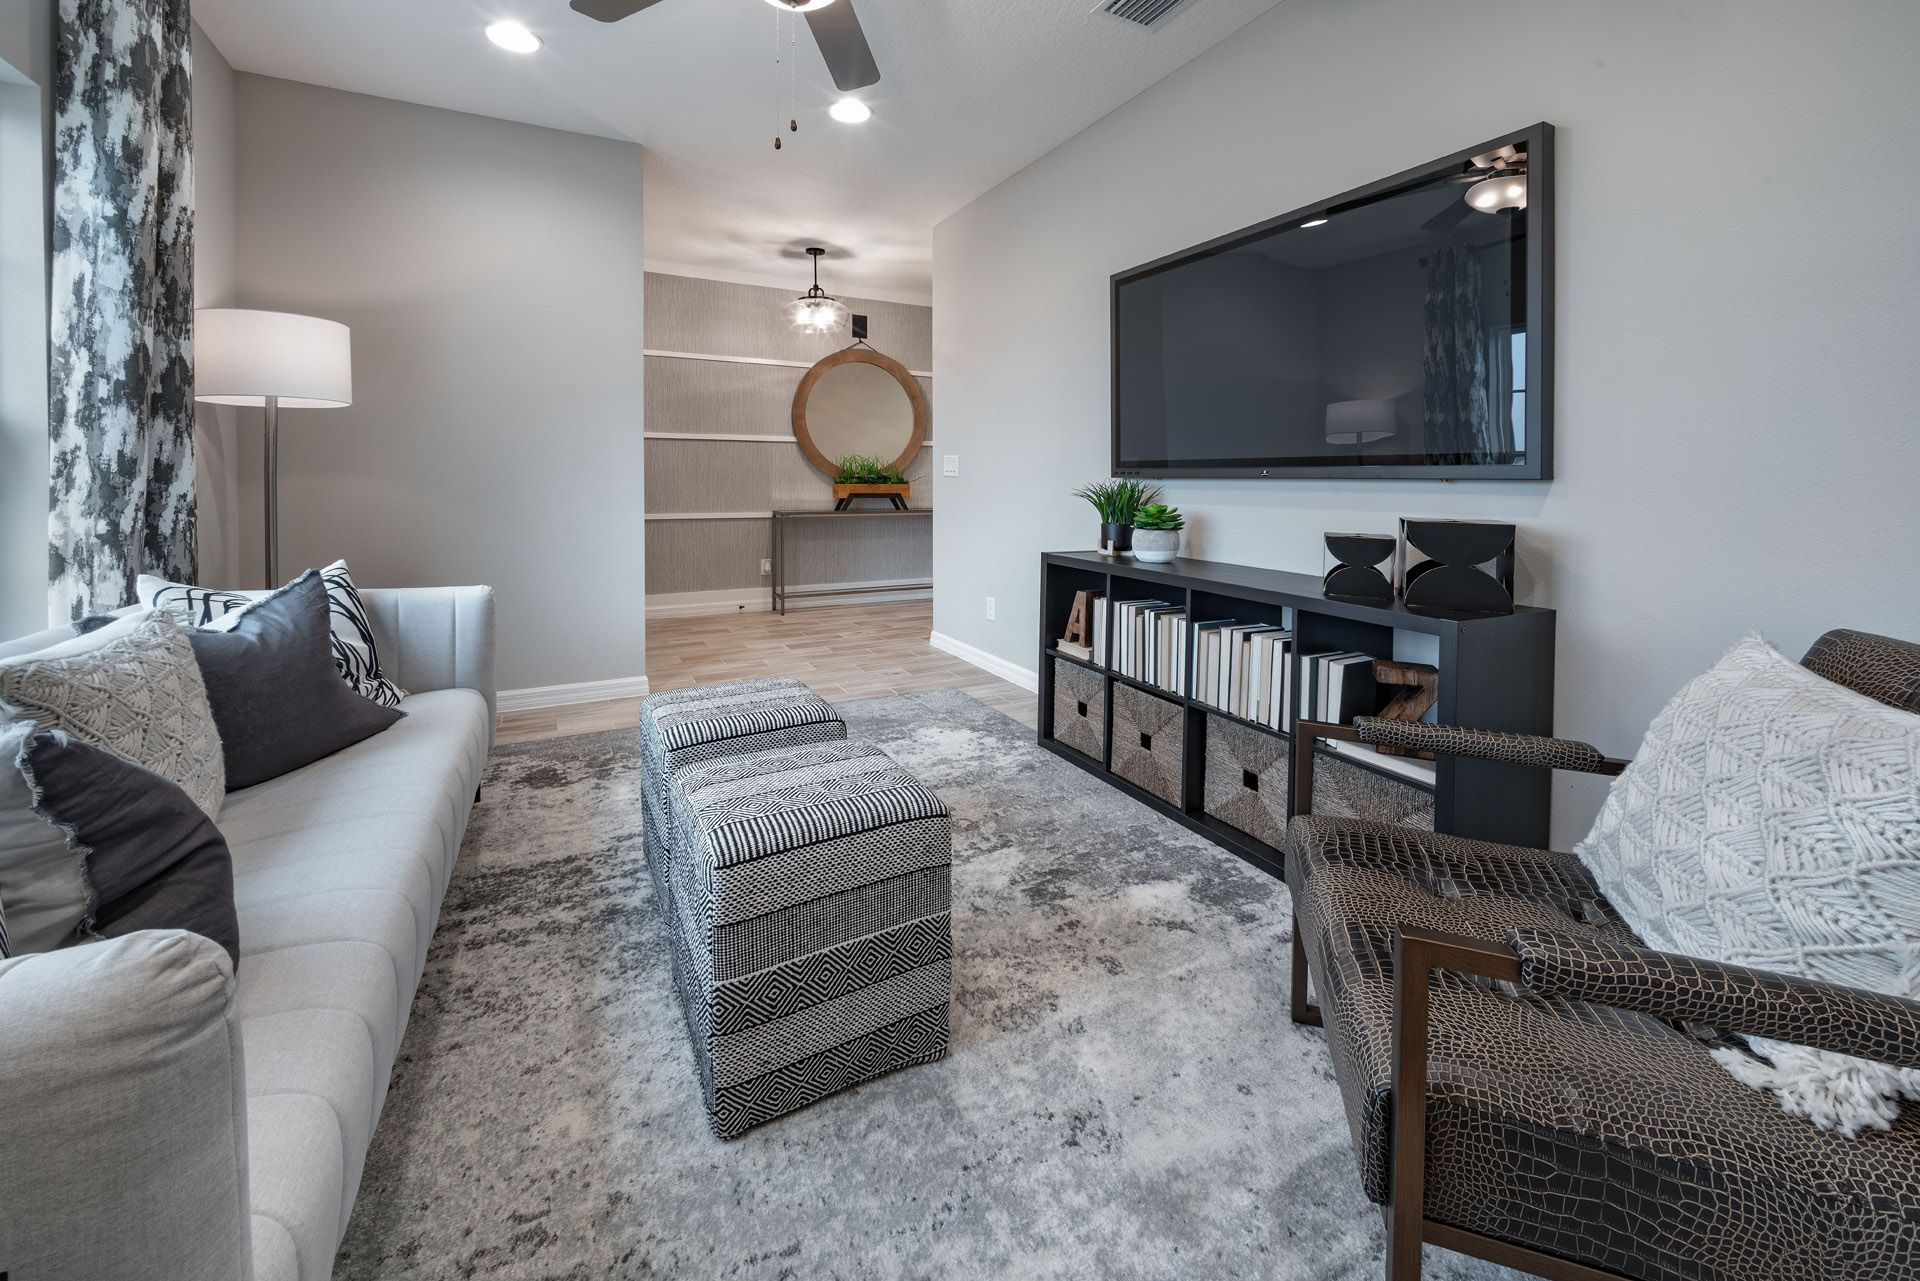 Flex Room off Entry:Bartley Flex Model Home at Orchid Terrace, Haines City